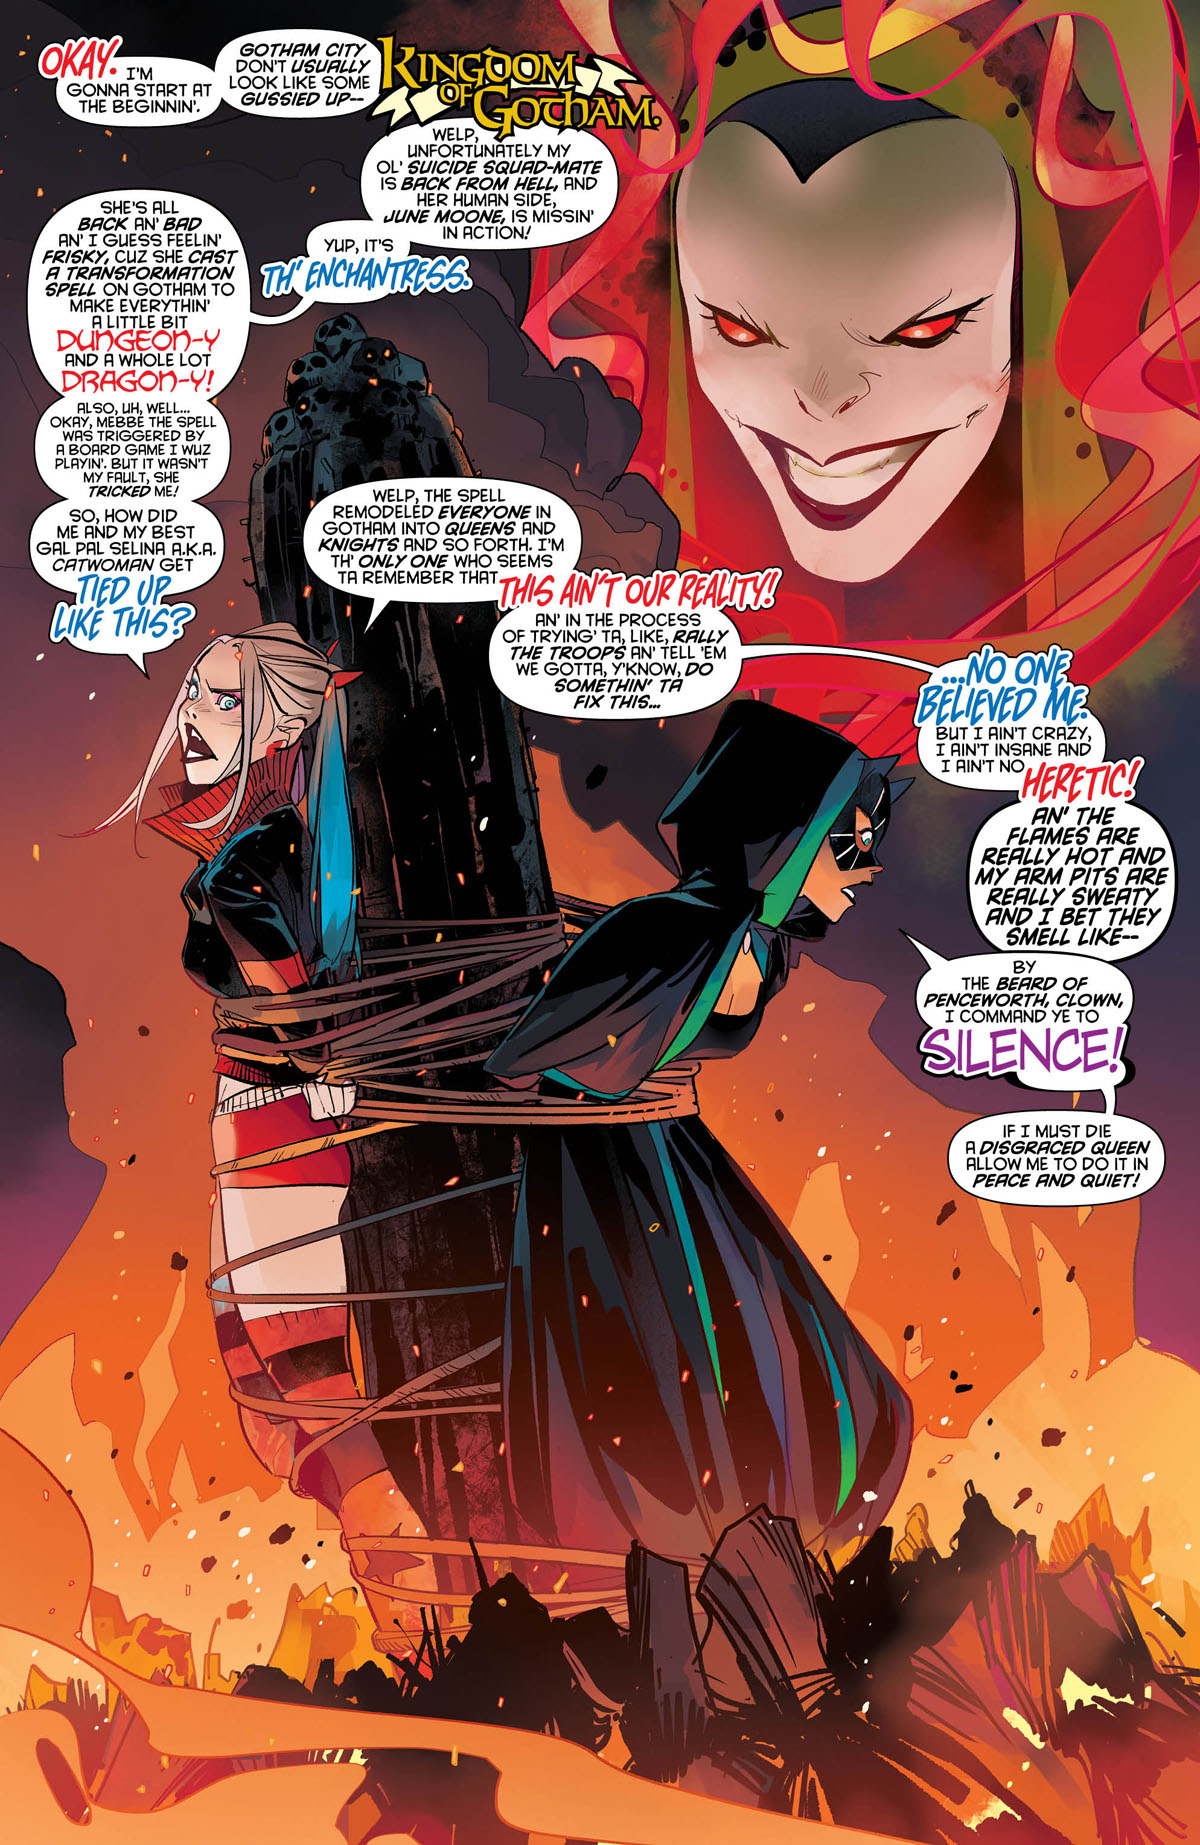 Harley Quinn #62 page 1